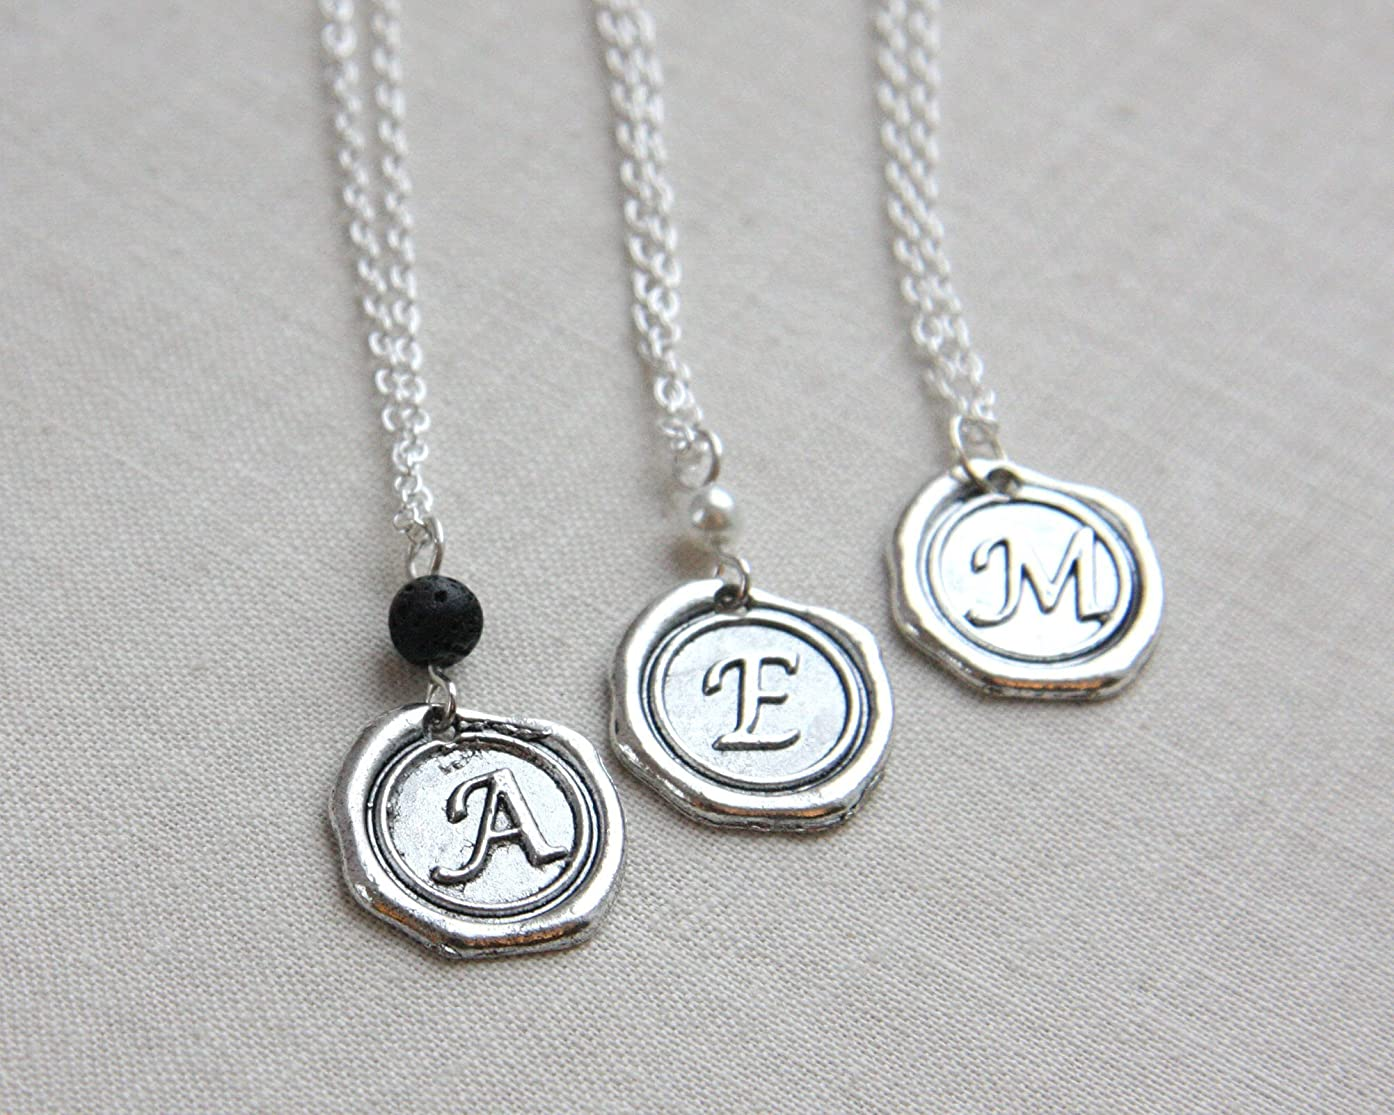 Mens Personalized Jewelry Initial Necklace Silver Disc Monogram Letter Alphabet Uppercase Personalized Pendant Wax Seal Mens Accessories boyfriend gift Handmade and Crafted by KapKaDesign